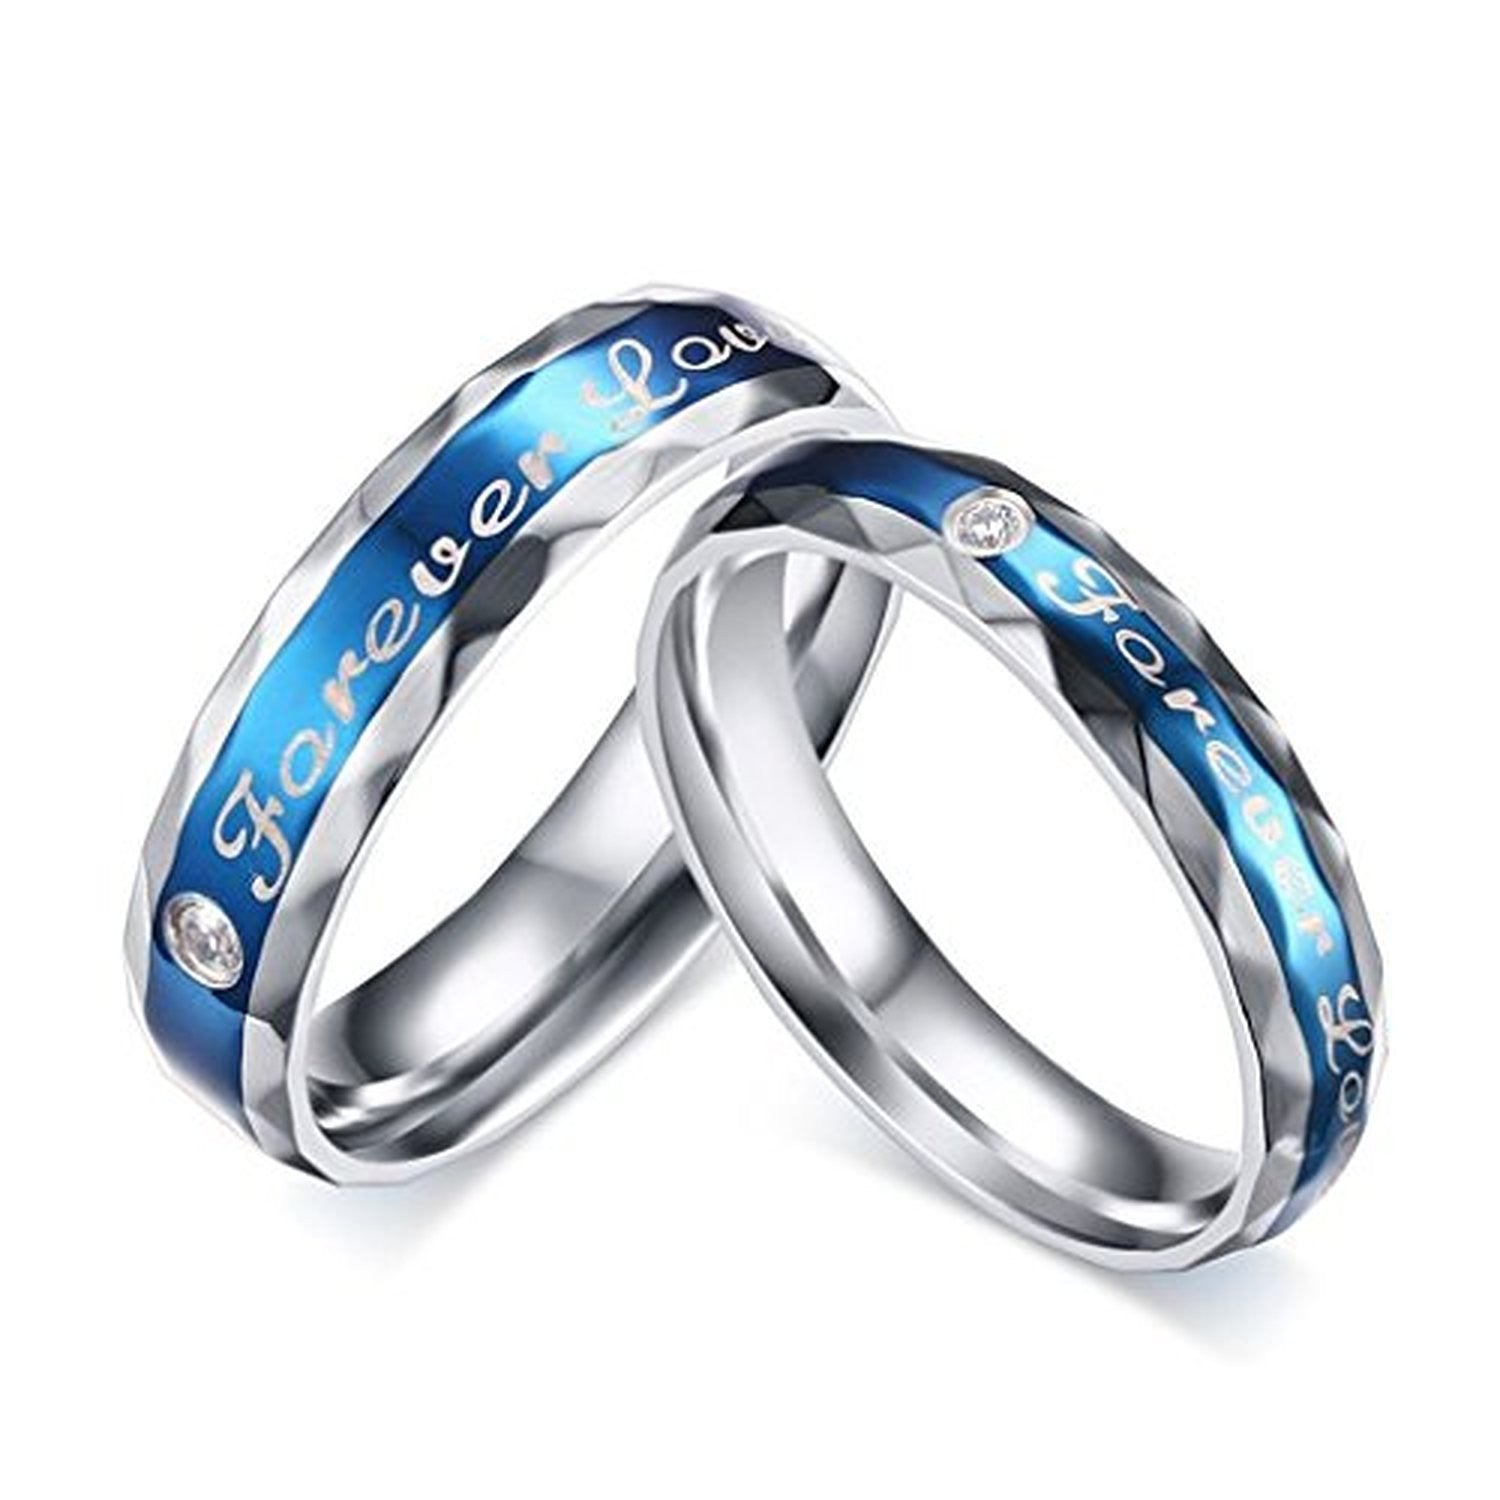 jewelry engagement fashion products titanium wedding steel evermarker couple ring rings az